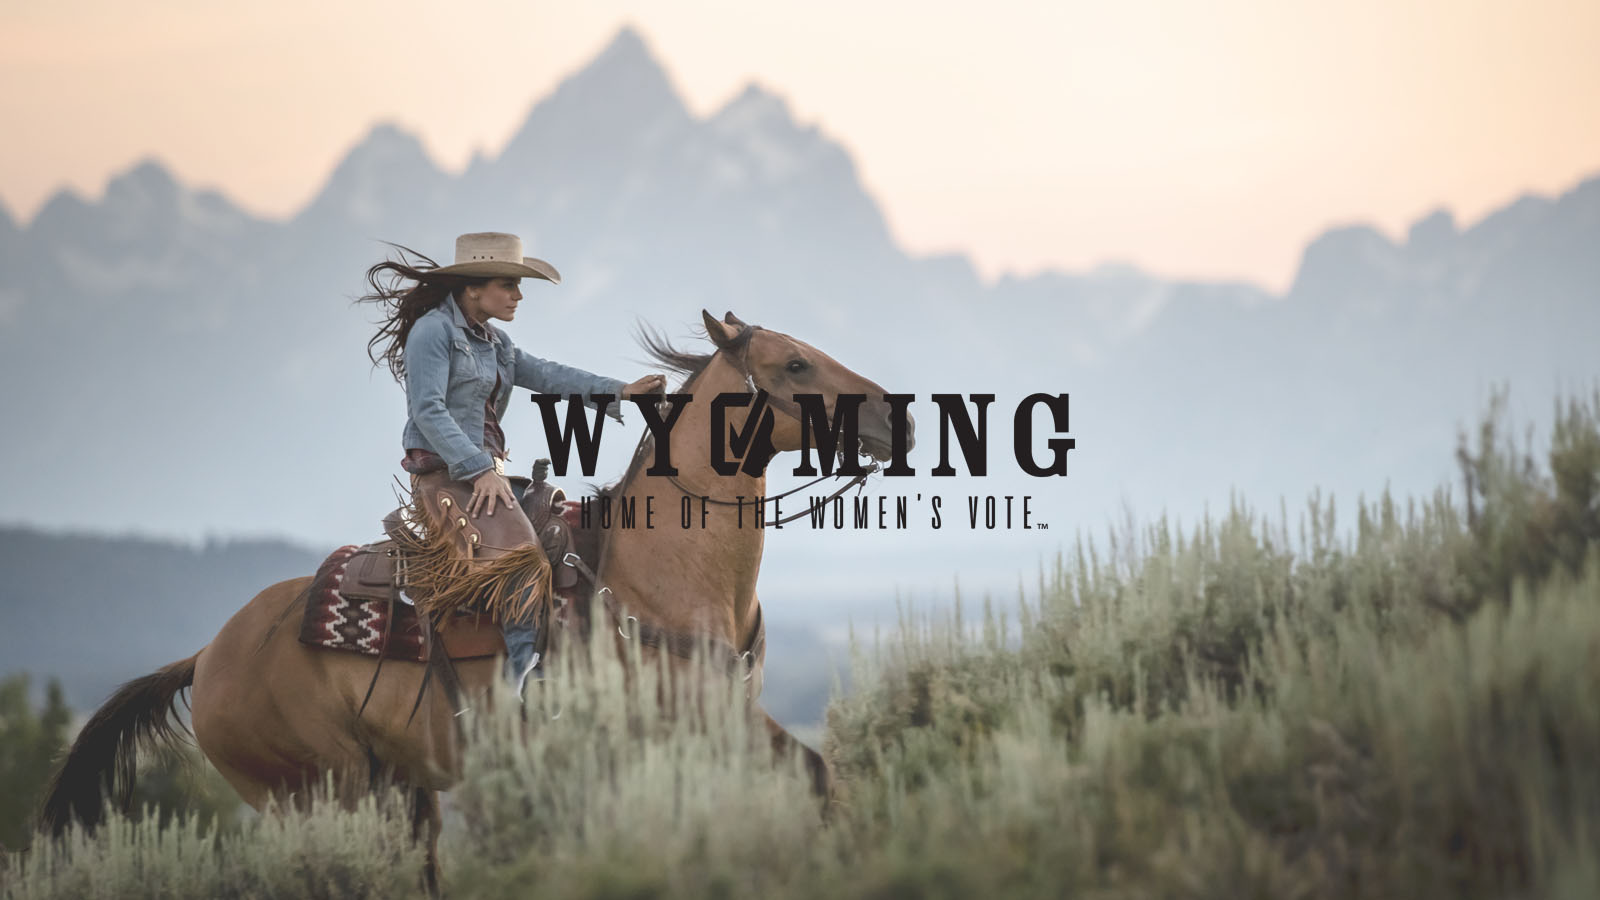 Woman riding horse in Grand Teton National Park with Women's Suffrage logo in black